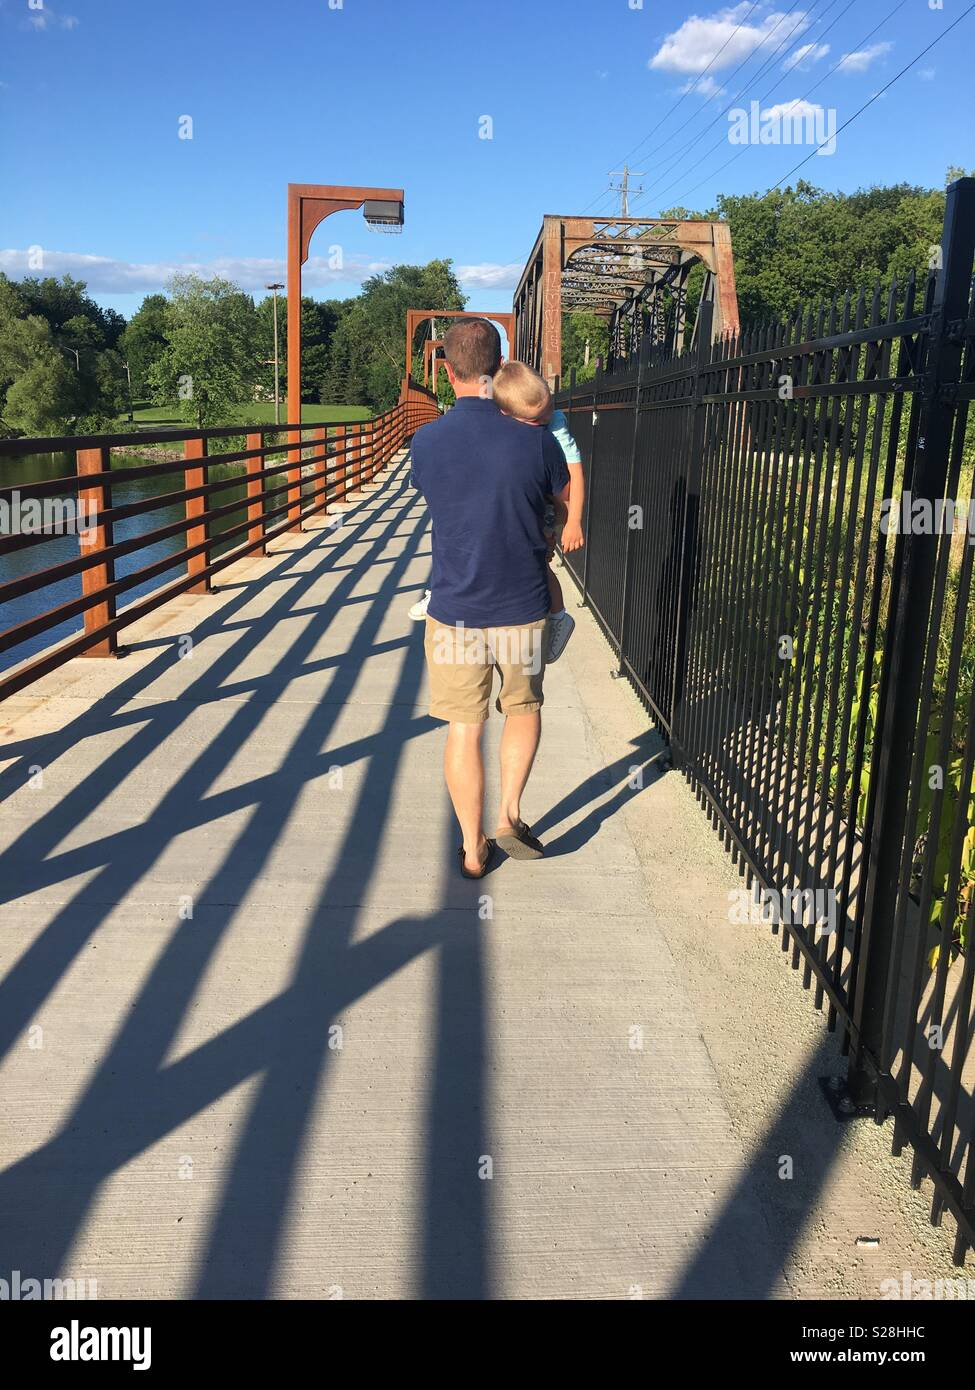 A dad carrying his son on a bridge - Stock Image